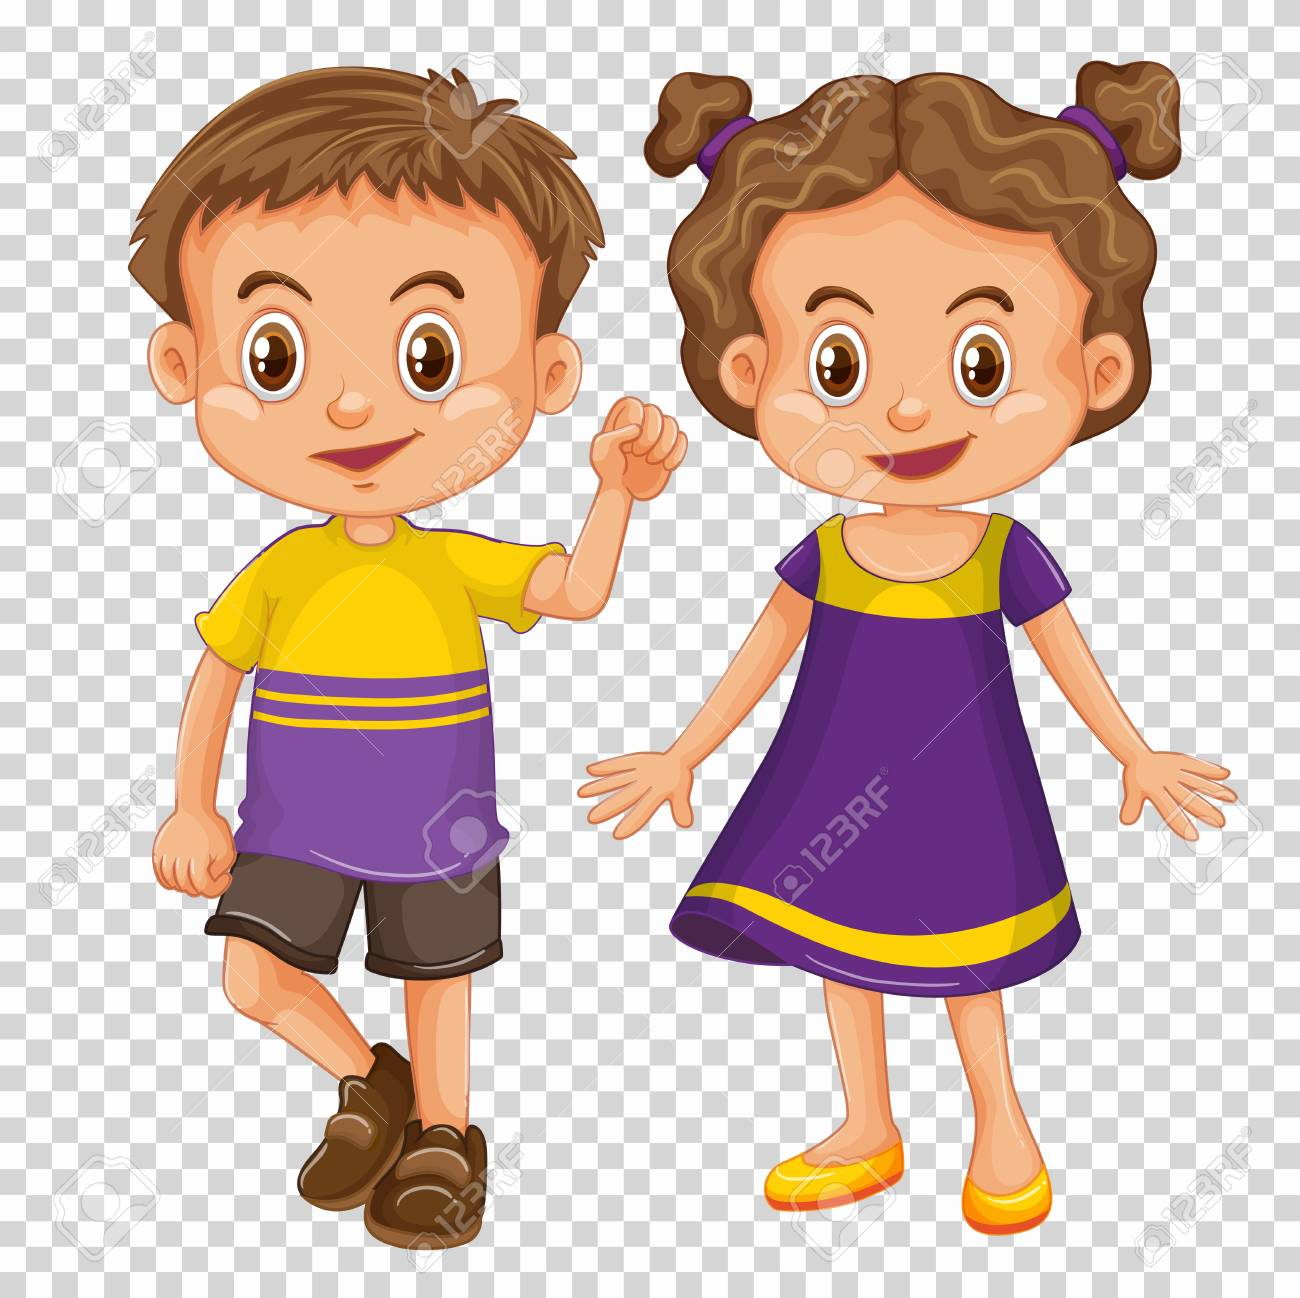 Child Clipart Transparent Background.